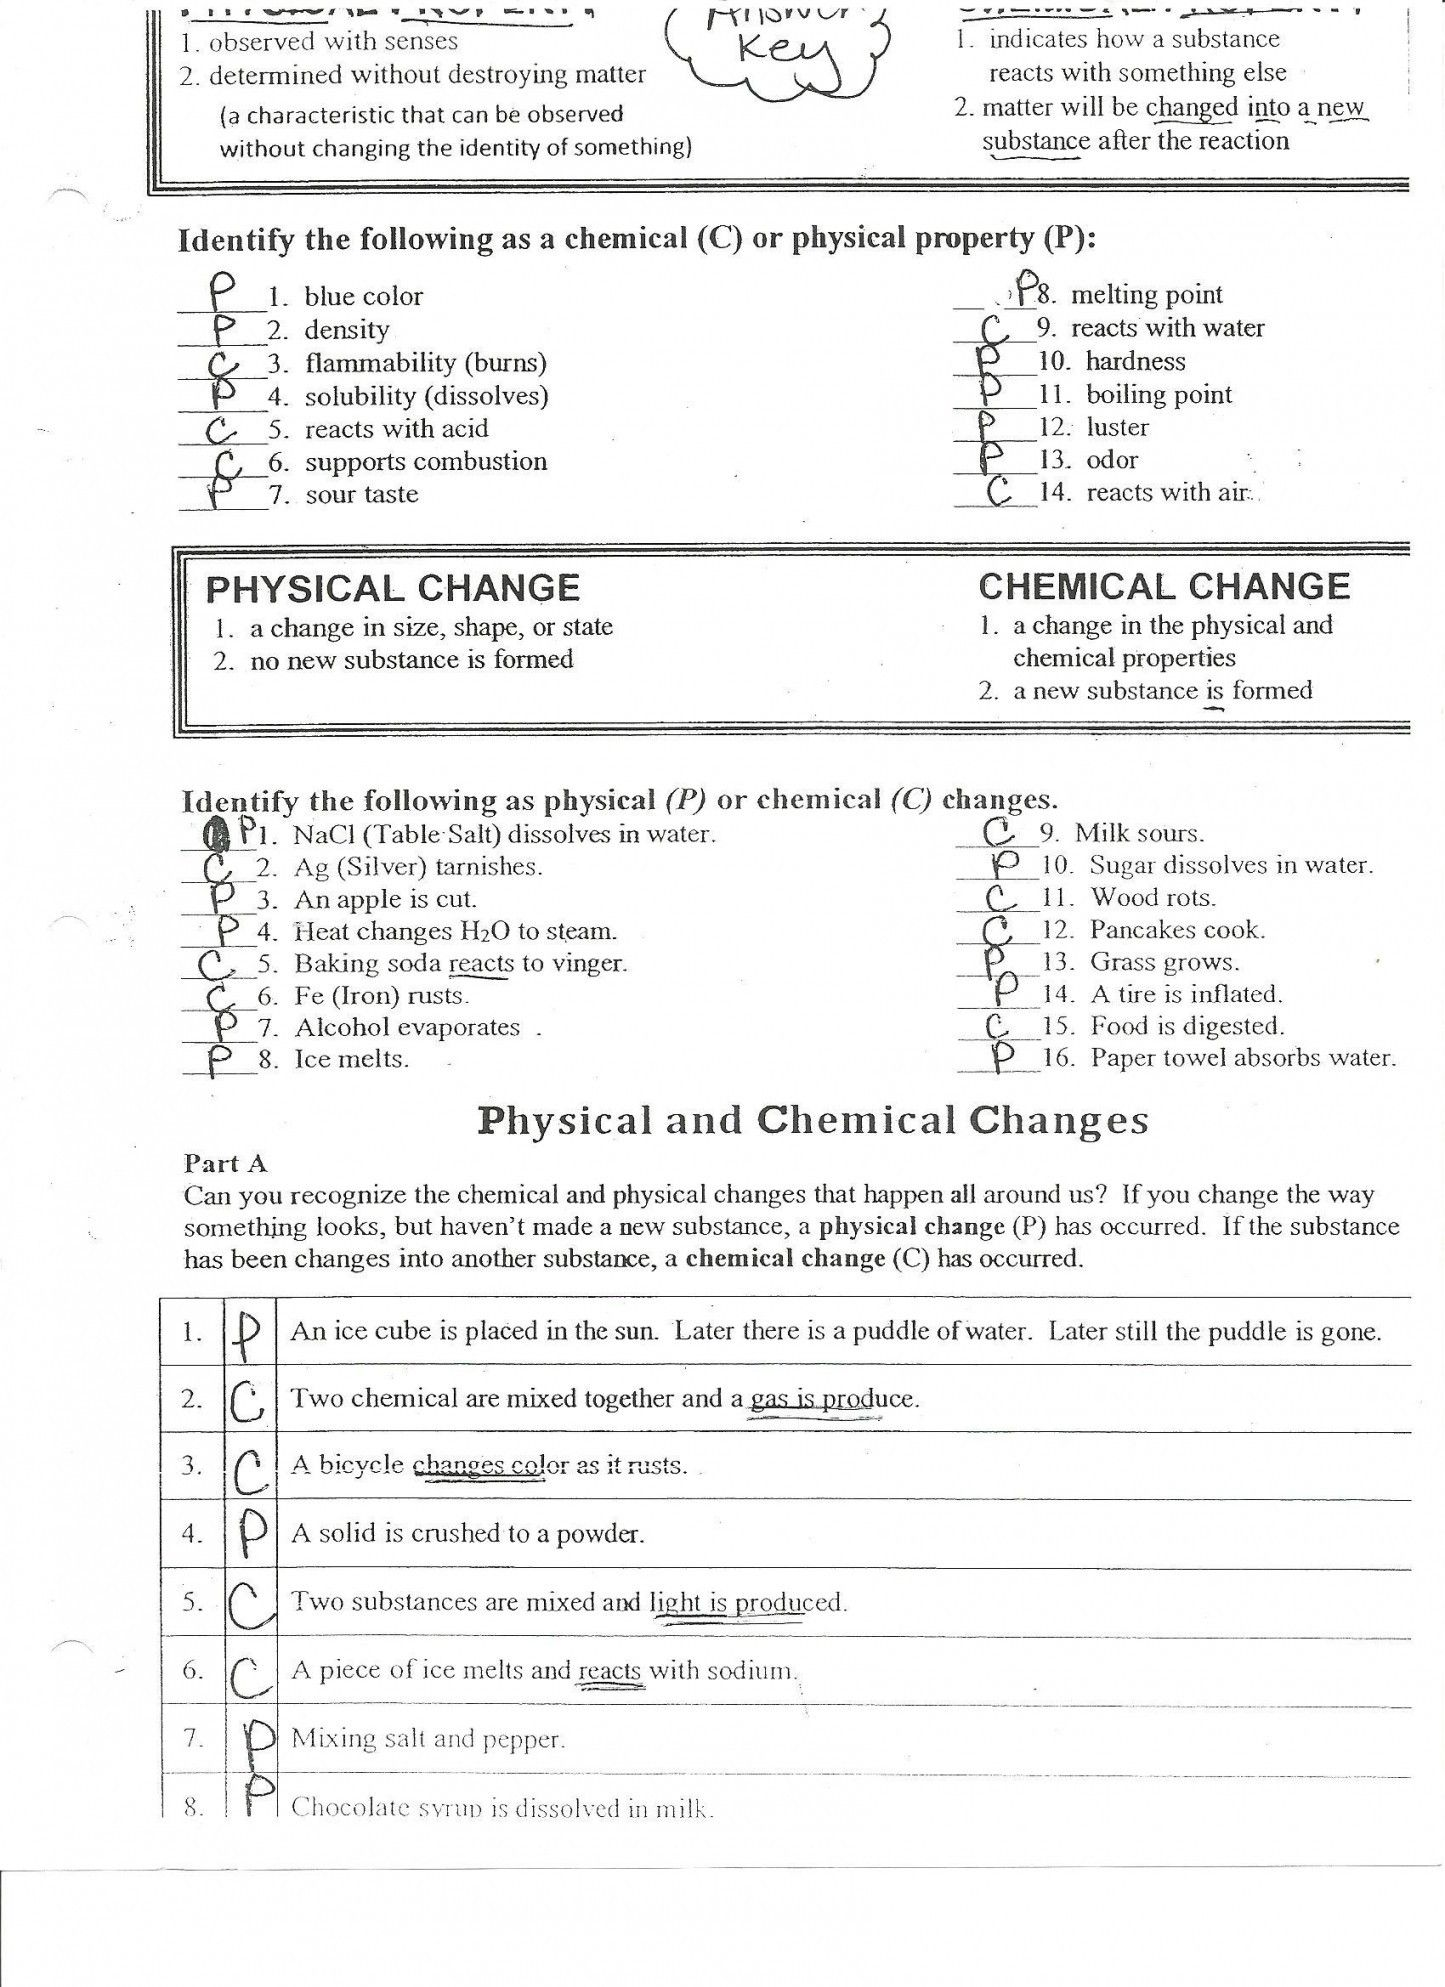 Physical Vs Chemical Properties Worksheet Answers